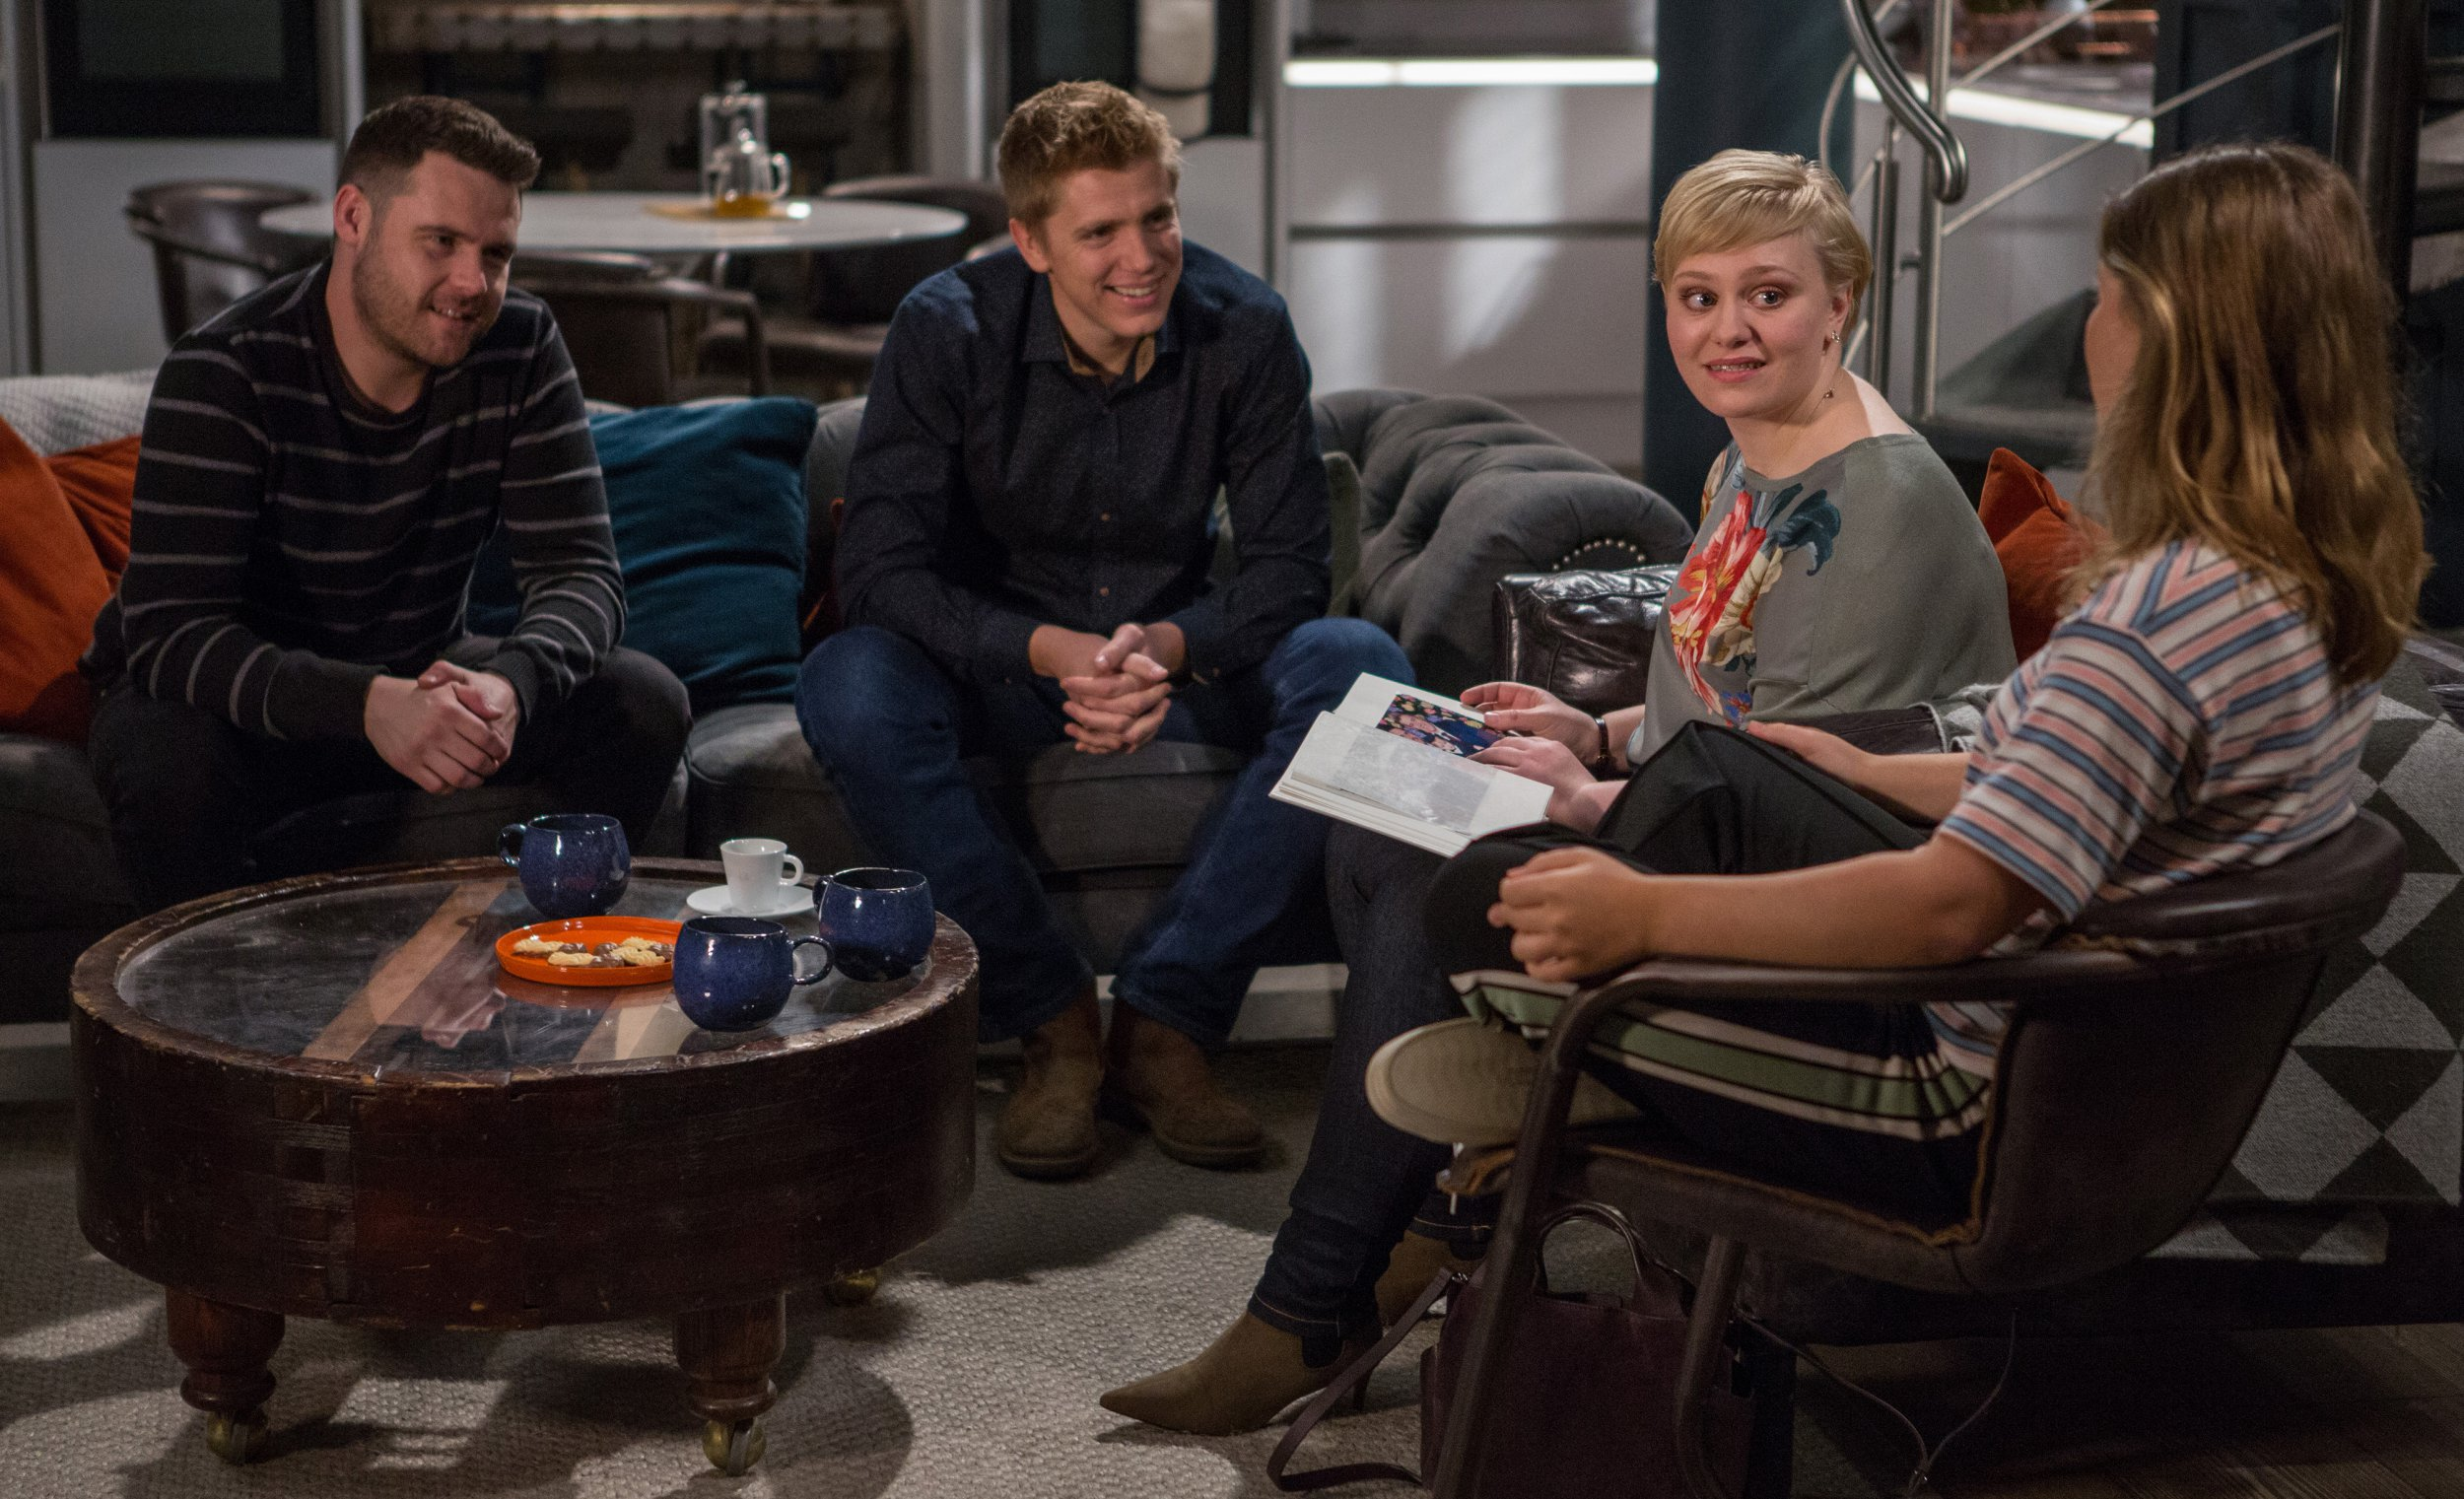 Emmerdale spoilers: Surprise exit means heartbreak ahead for Robert Sugden and Aaron Dingle